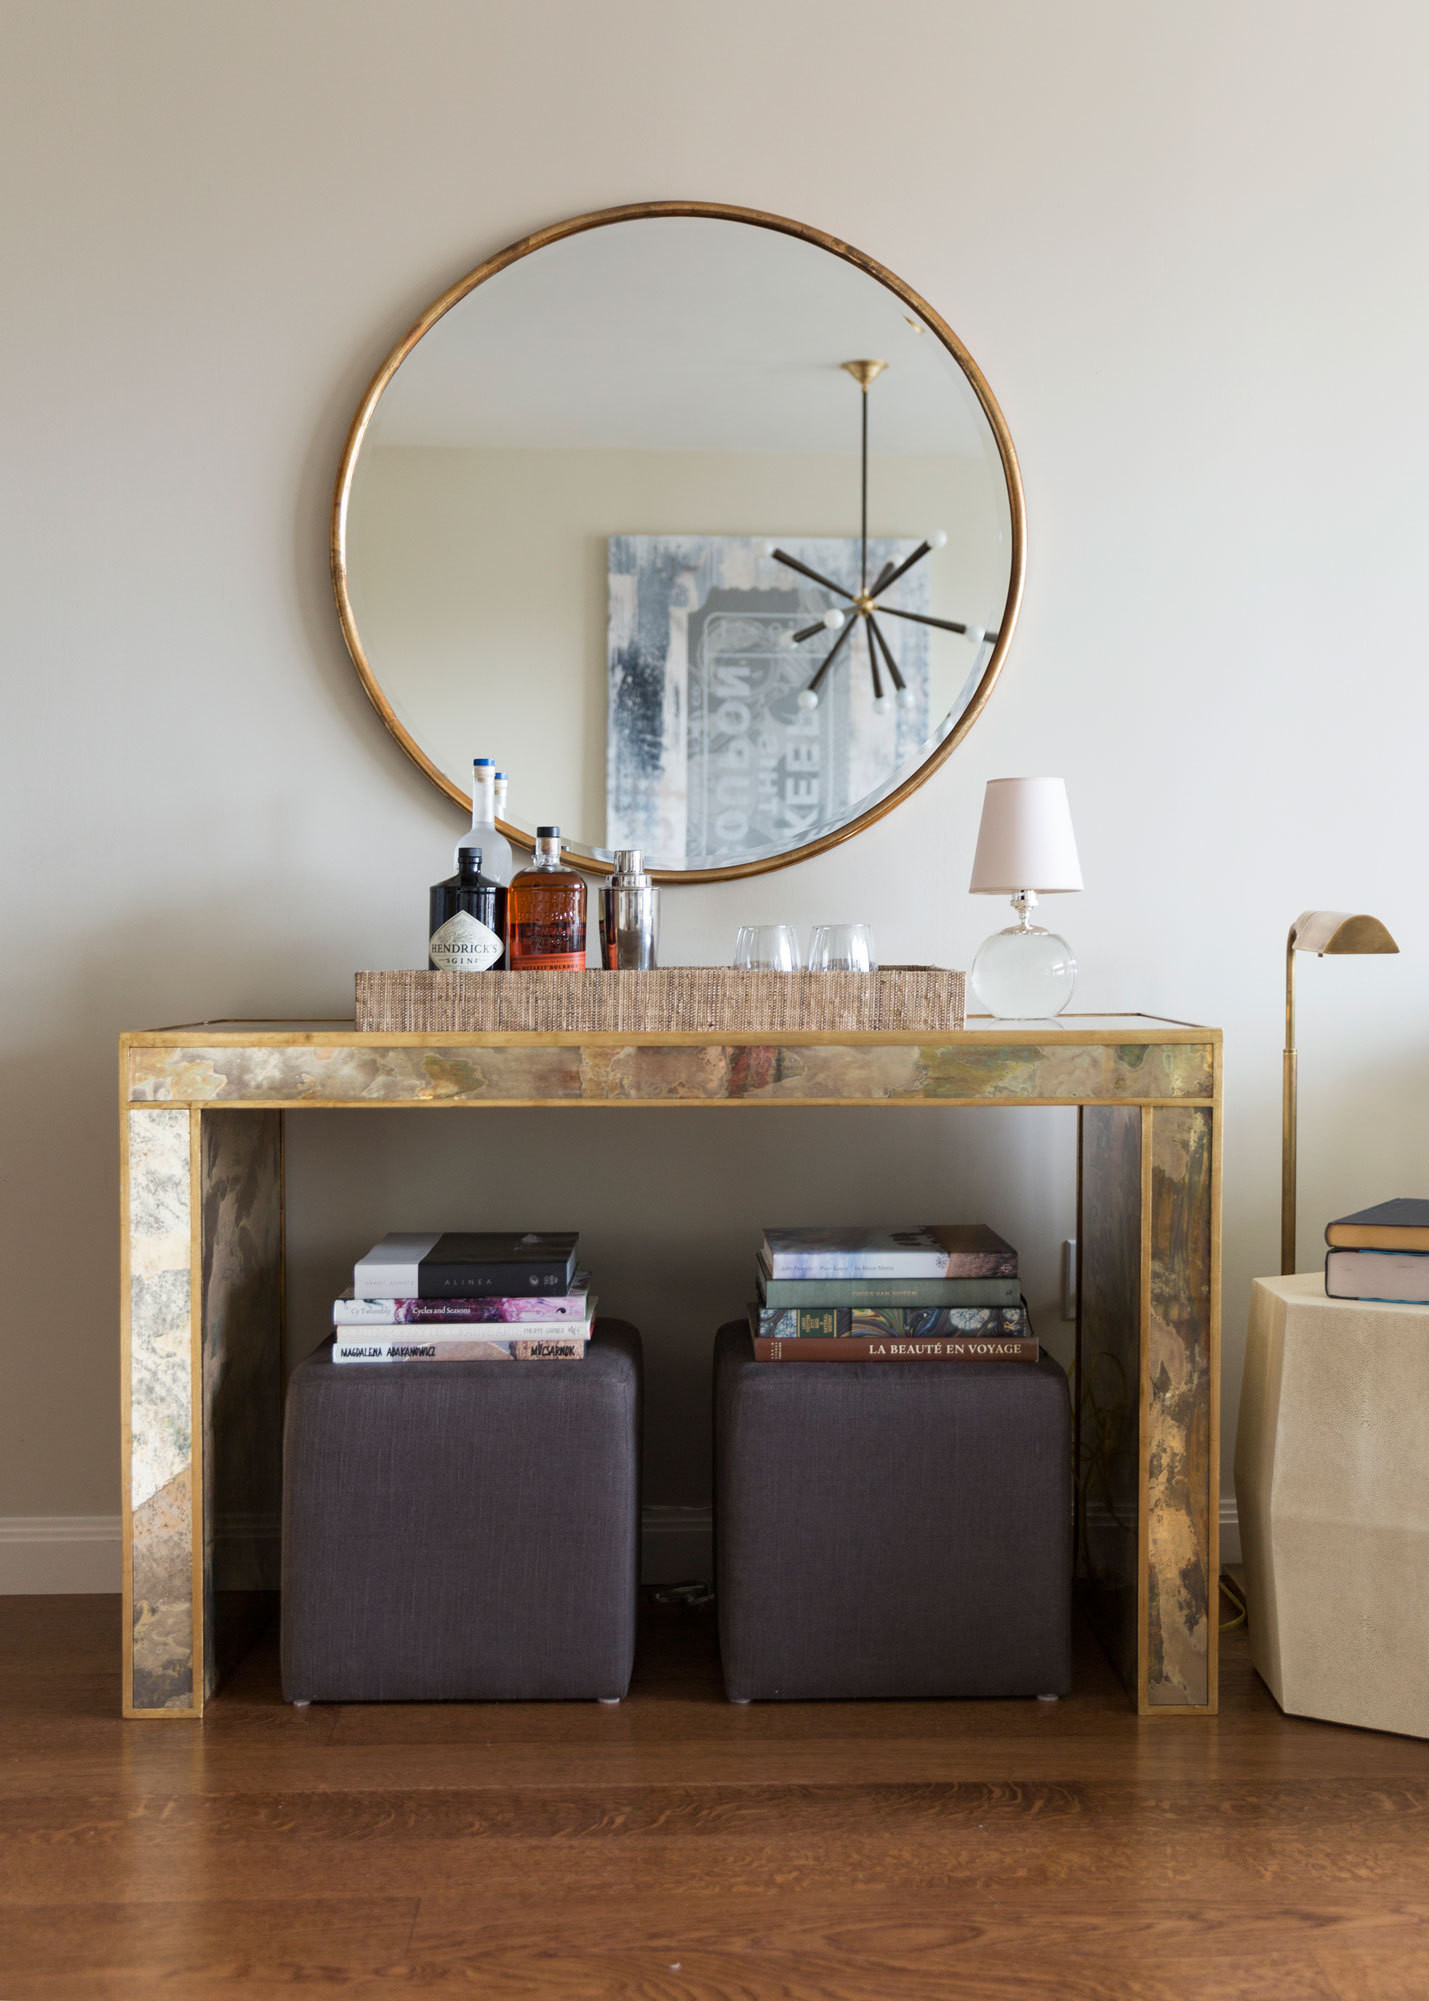 A mirrored console creates a striking sense of welcome—and doubles as a bar for entertaining.